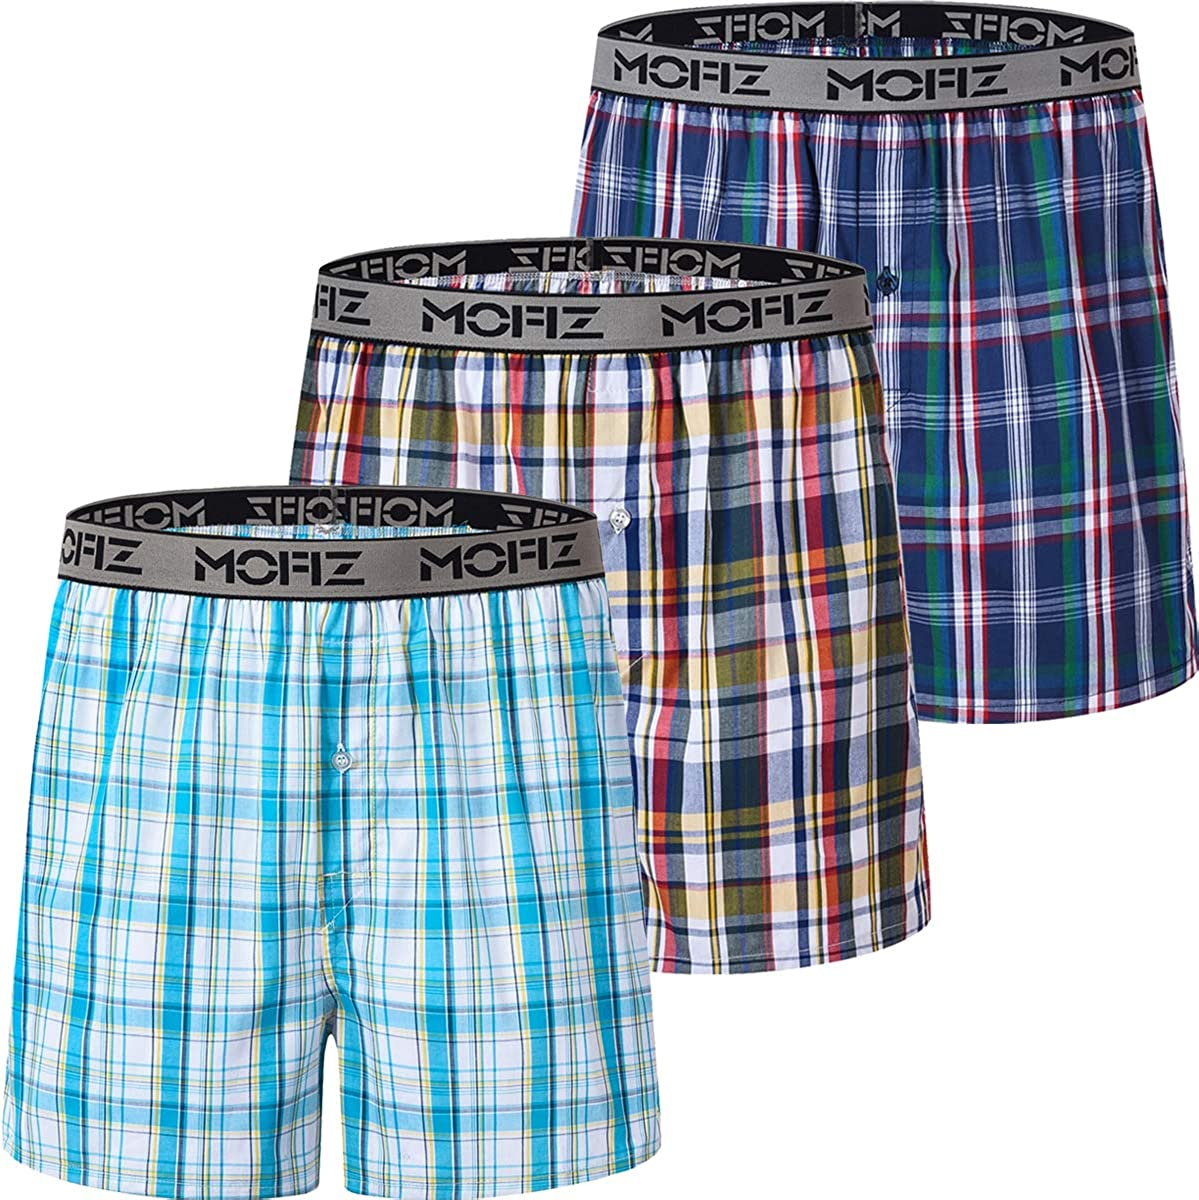 JINSHI Mens Woven Checked Boxer Shorts 100/% Cotton Underwear Elastic Waist Button Fly Boxers Trunks